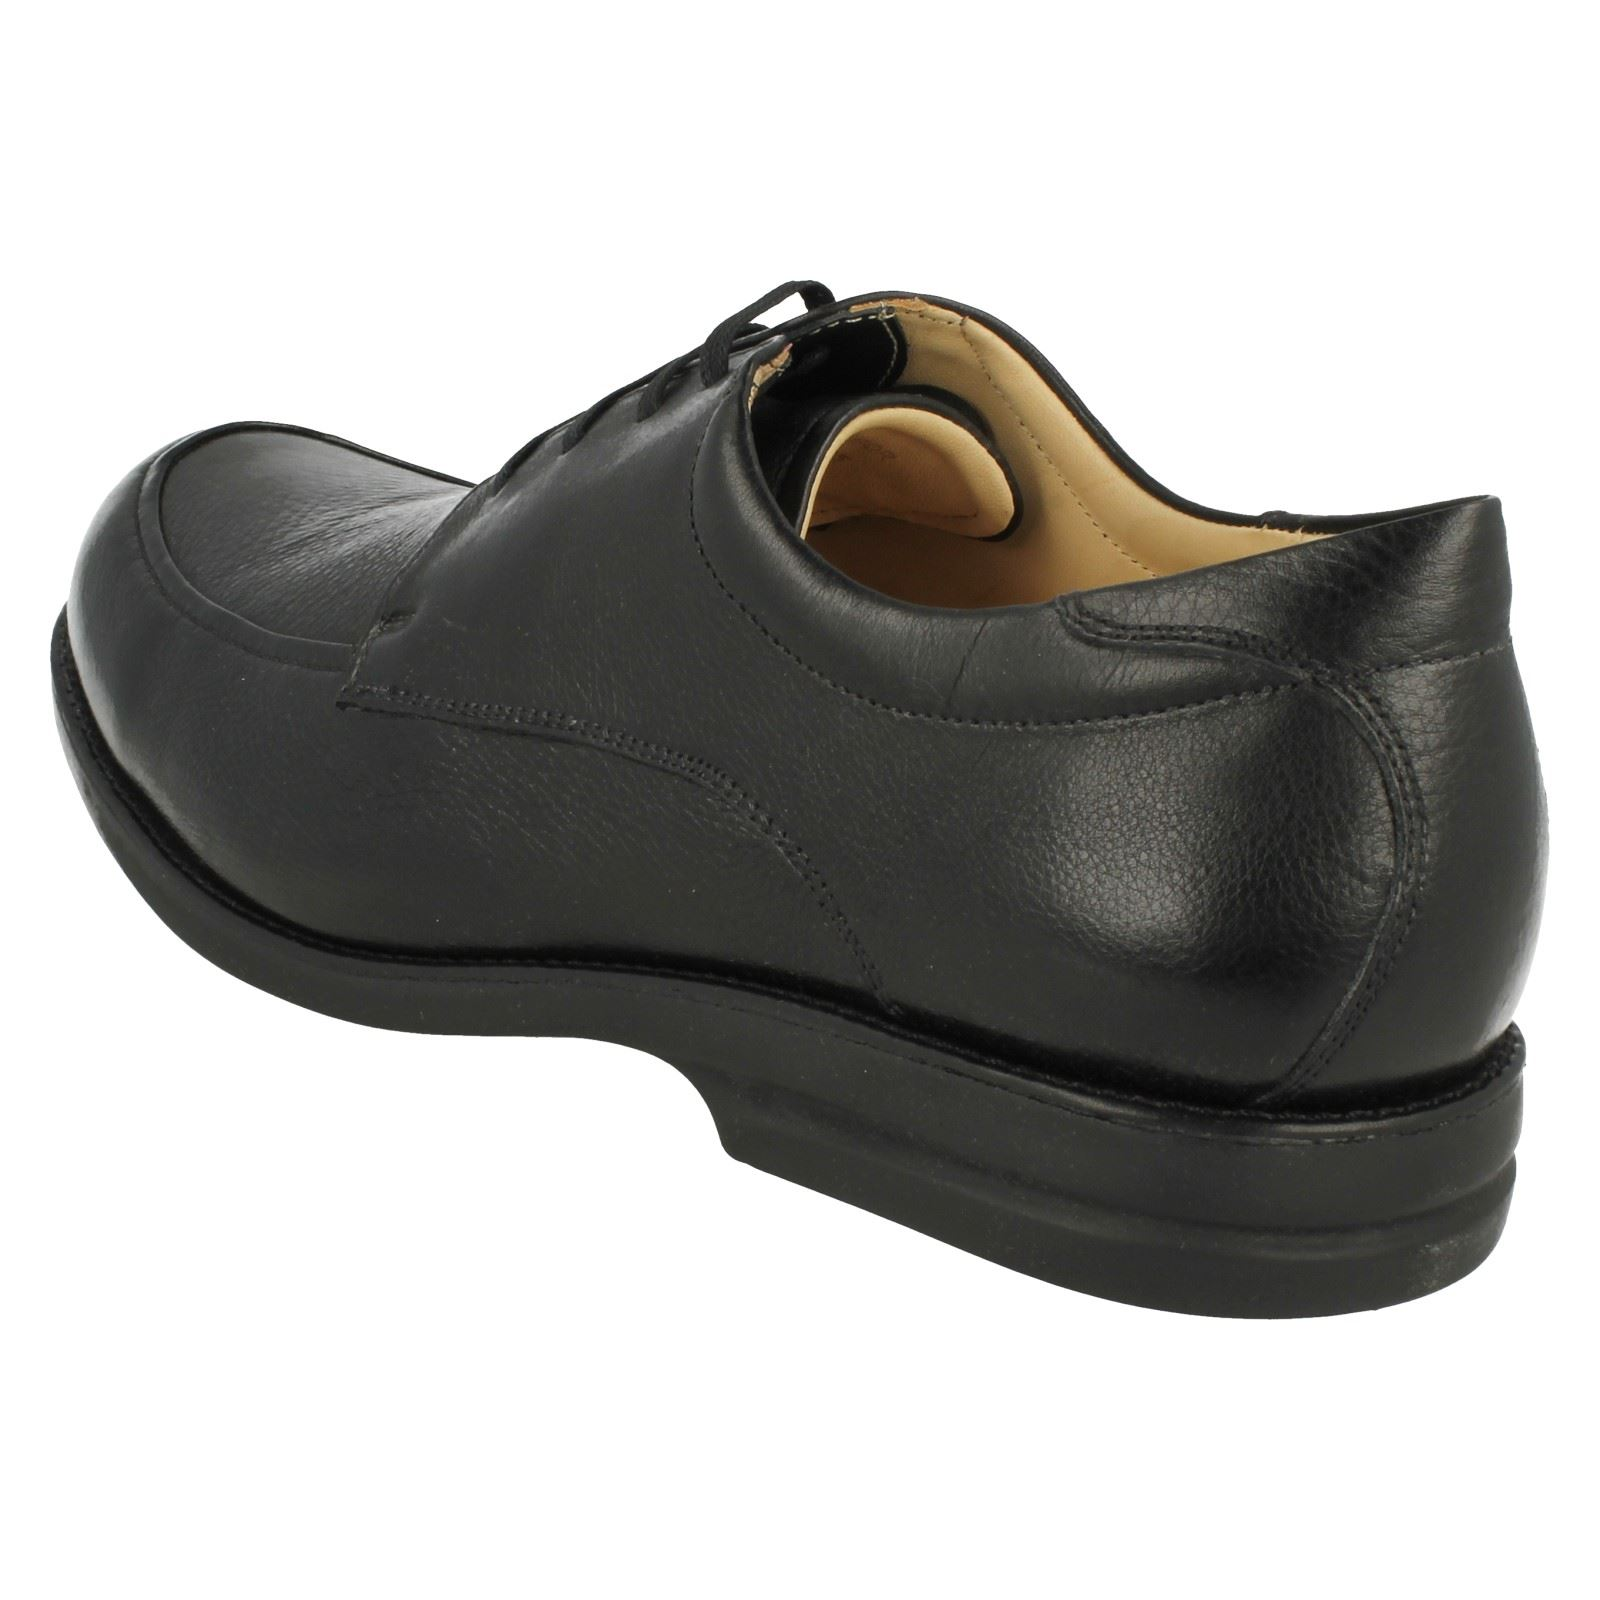 Mens Anatomic Smart Leather Shoes Anapolis